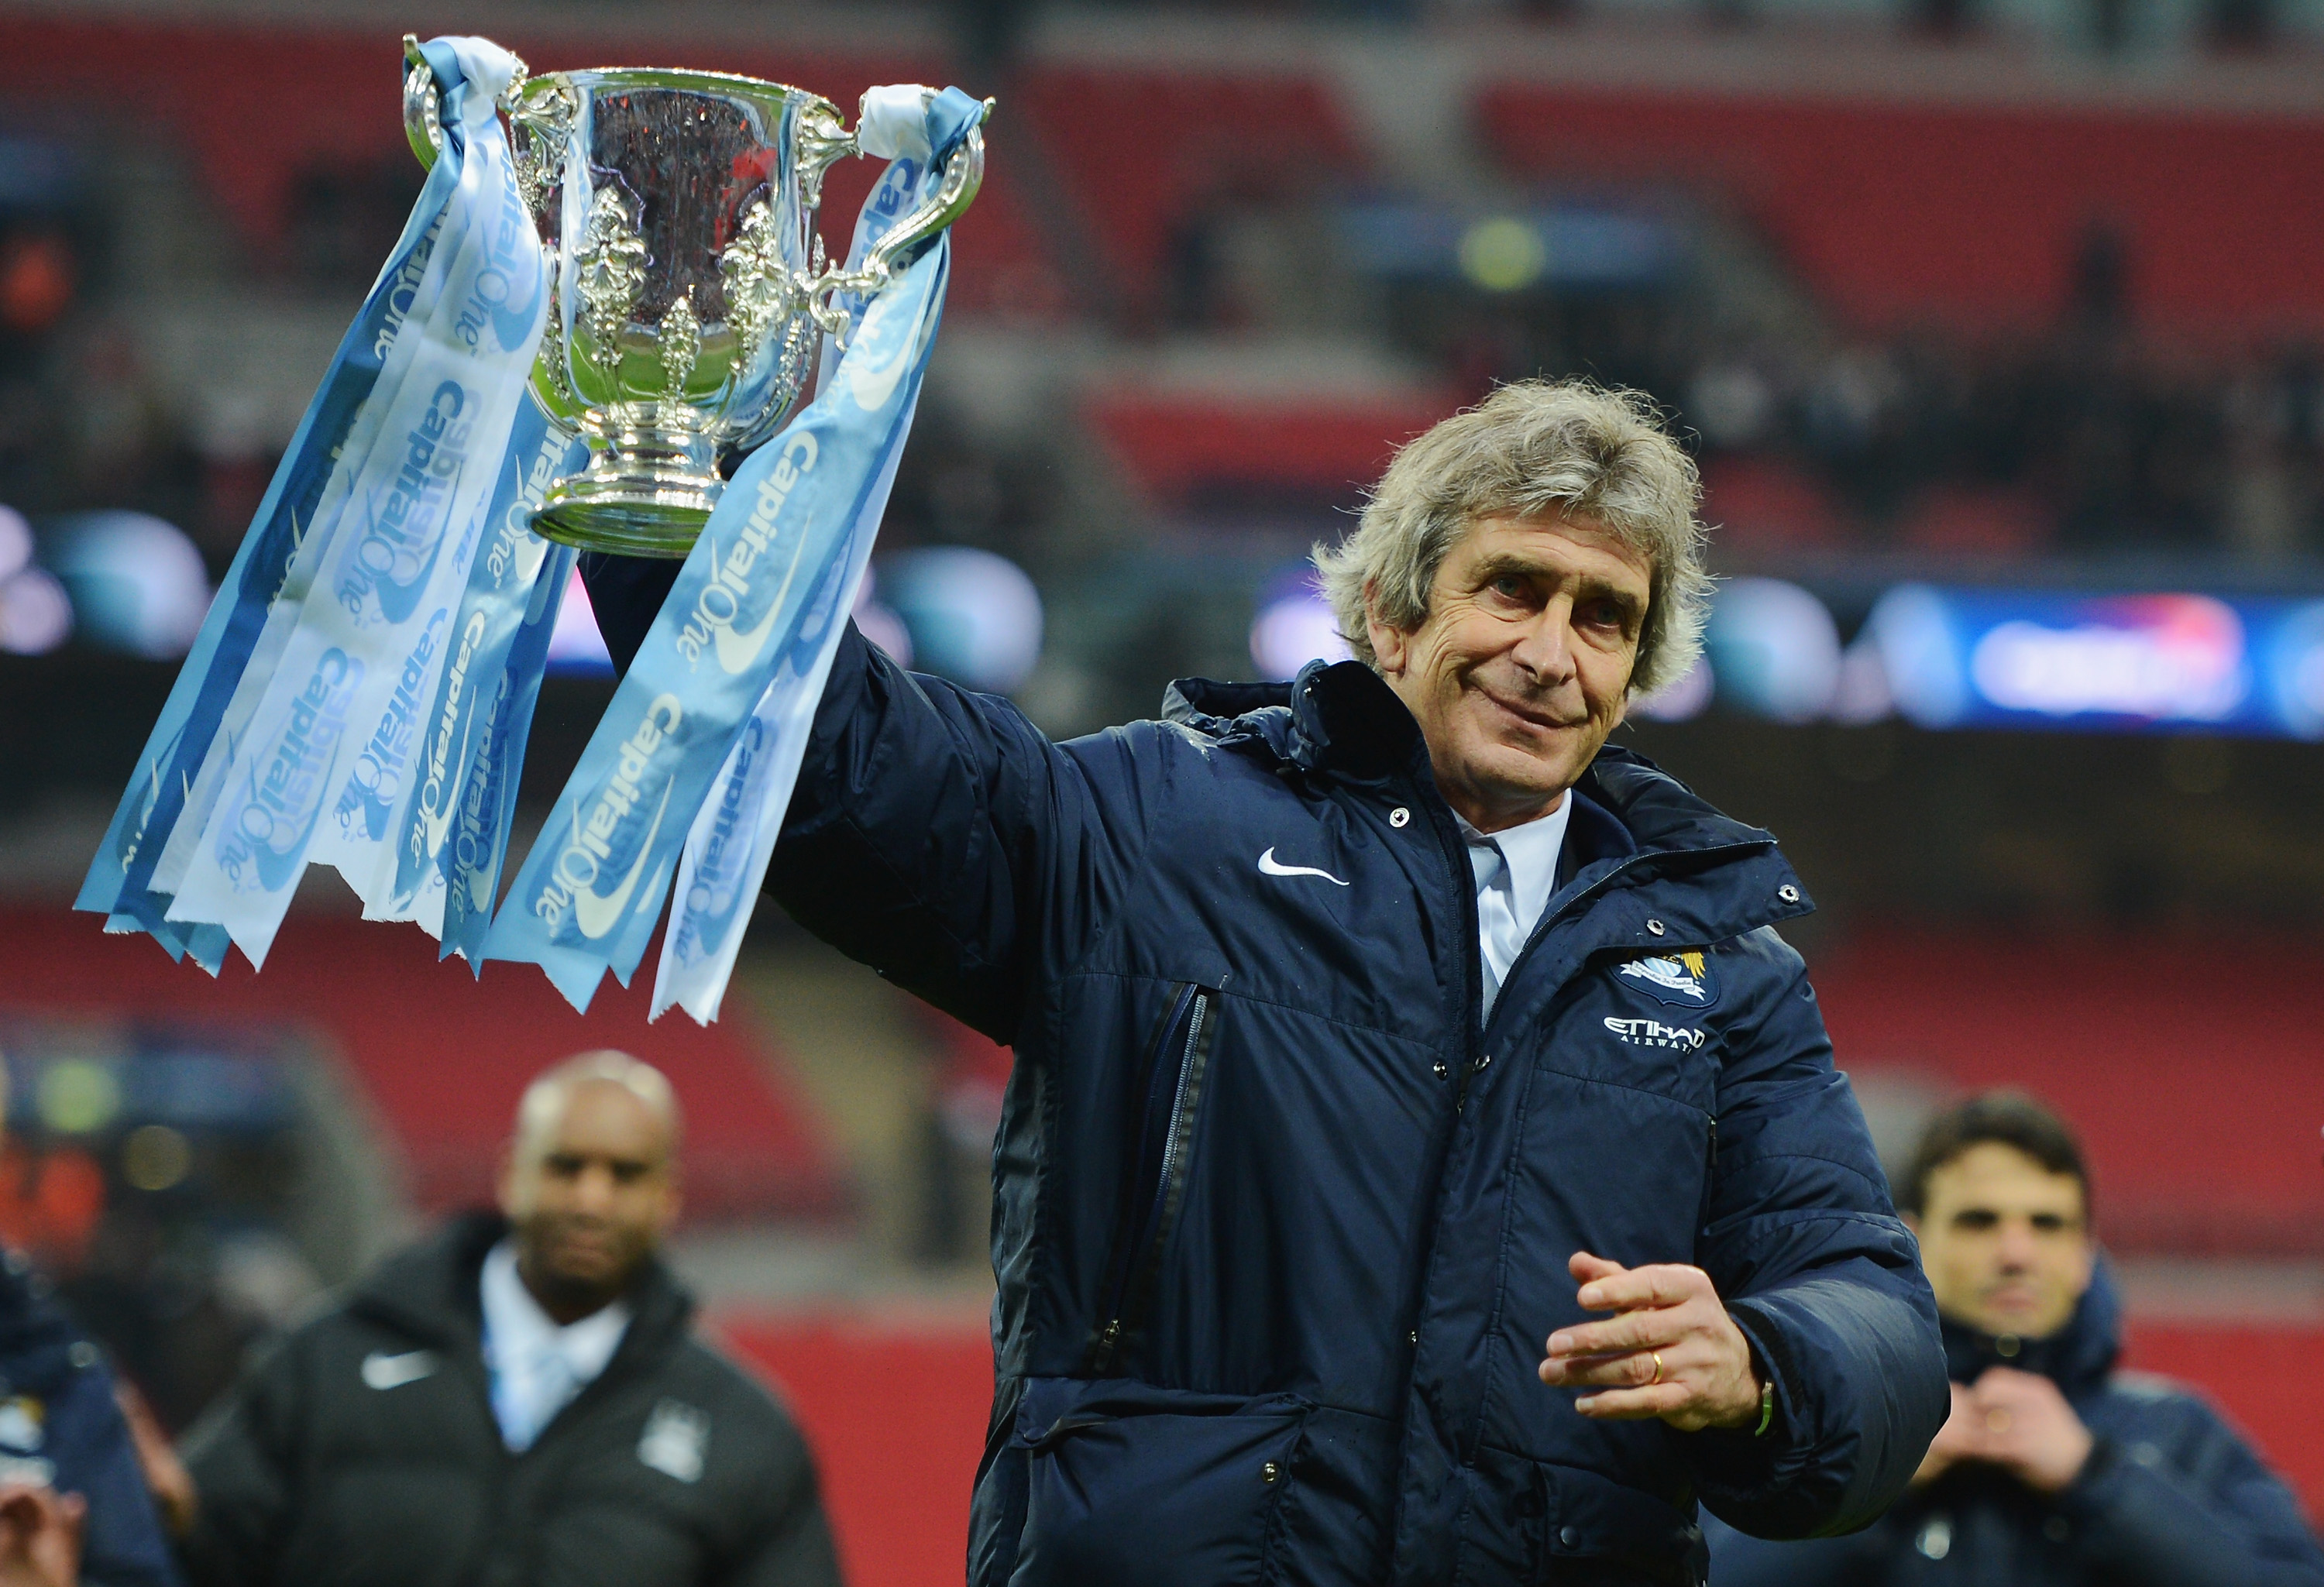 Capital One Cup final victory over Liverpool would boost Manchester City's title push and give Manuel Pellegrini a fitting send-off